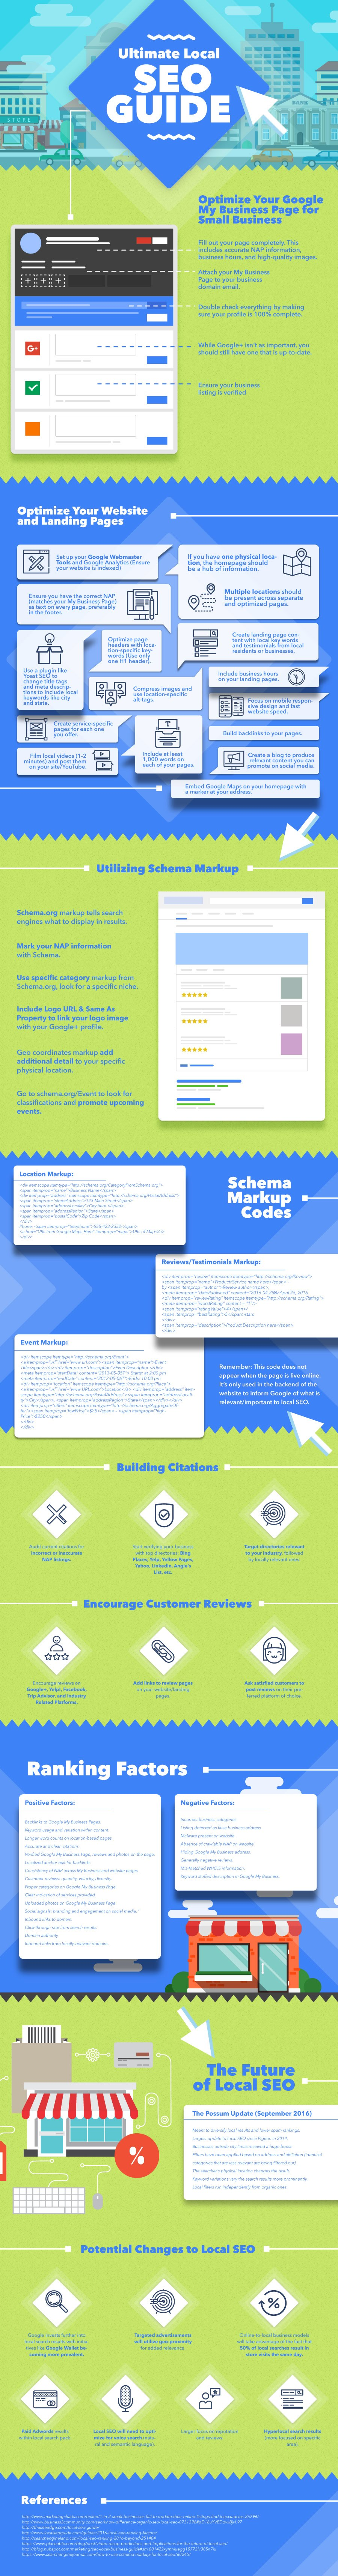 Ultimate Local SEO Guide - #Infographic